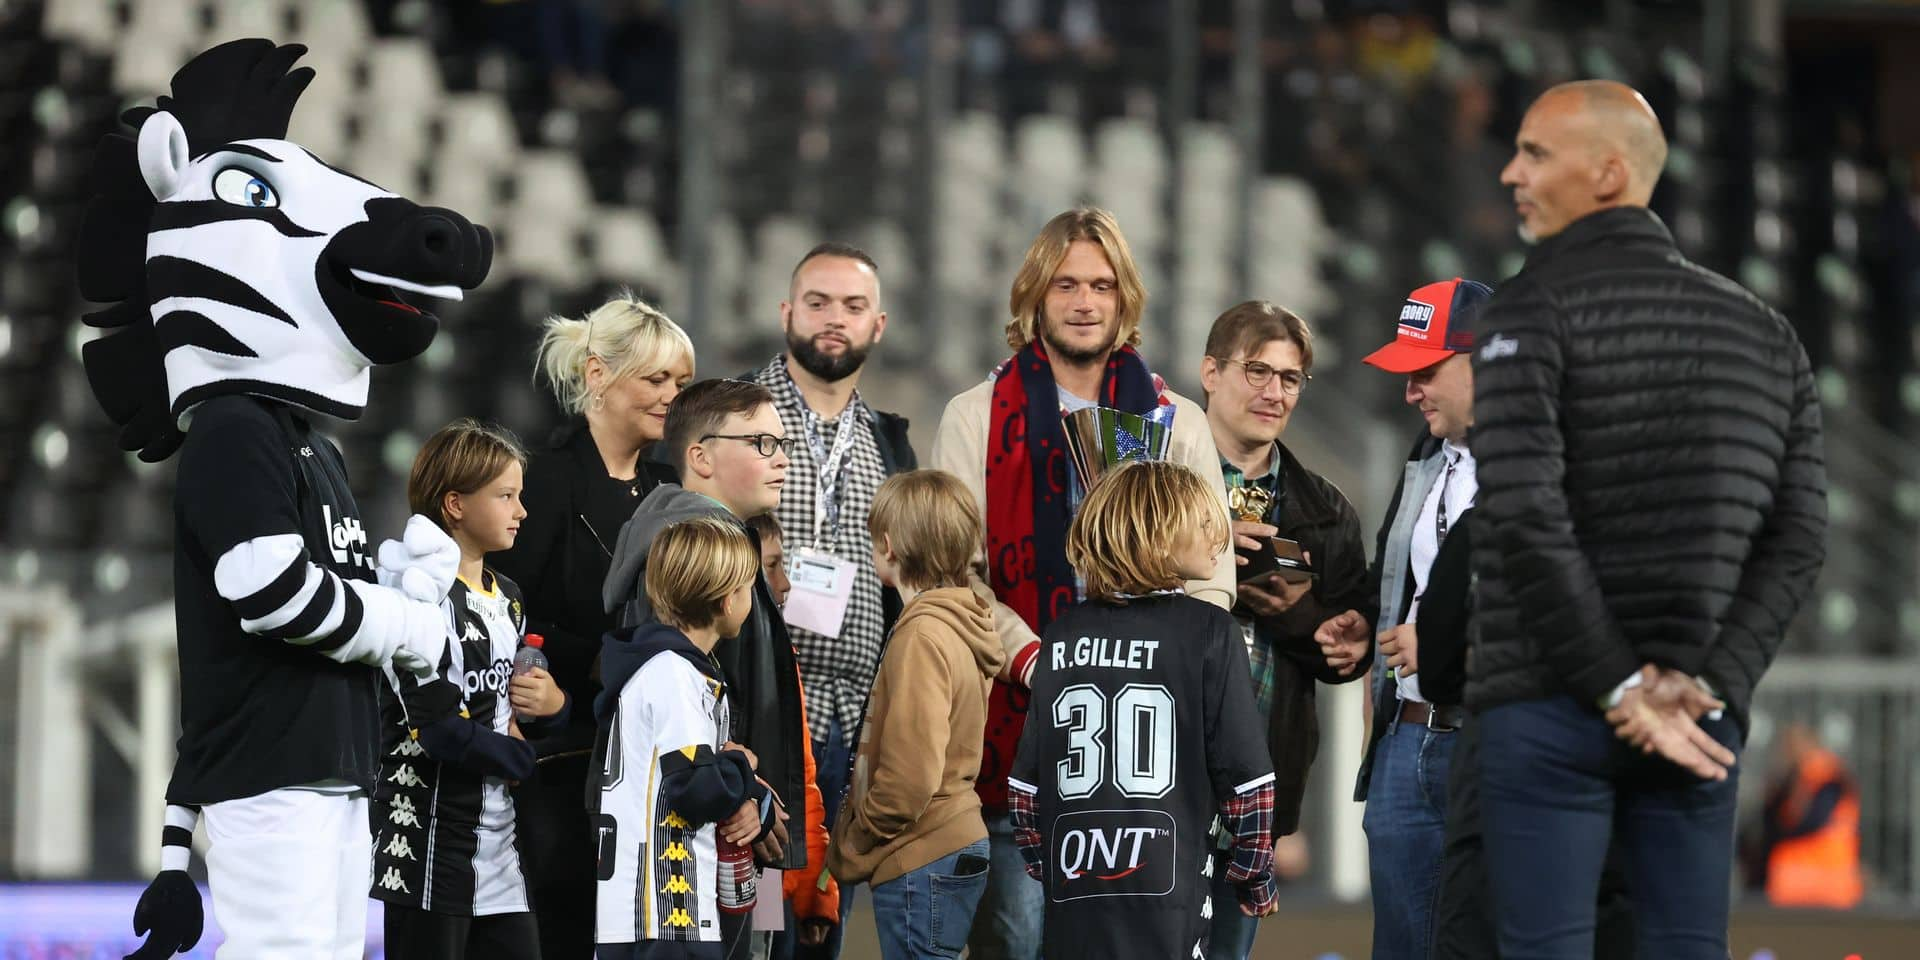 A Charleroi, le paradoxe Guillaume Gillet